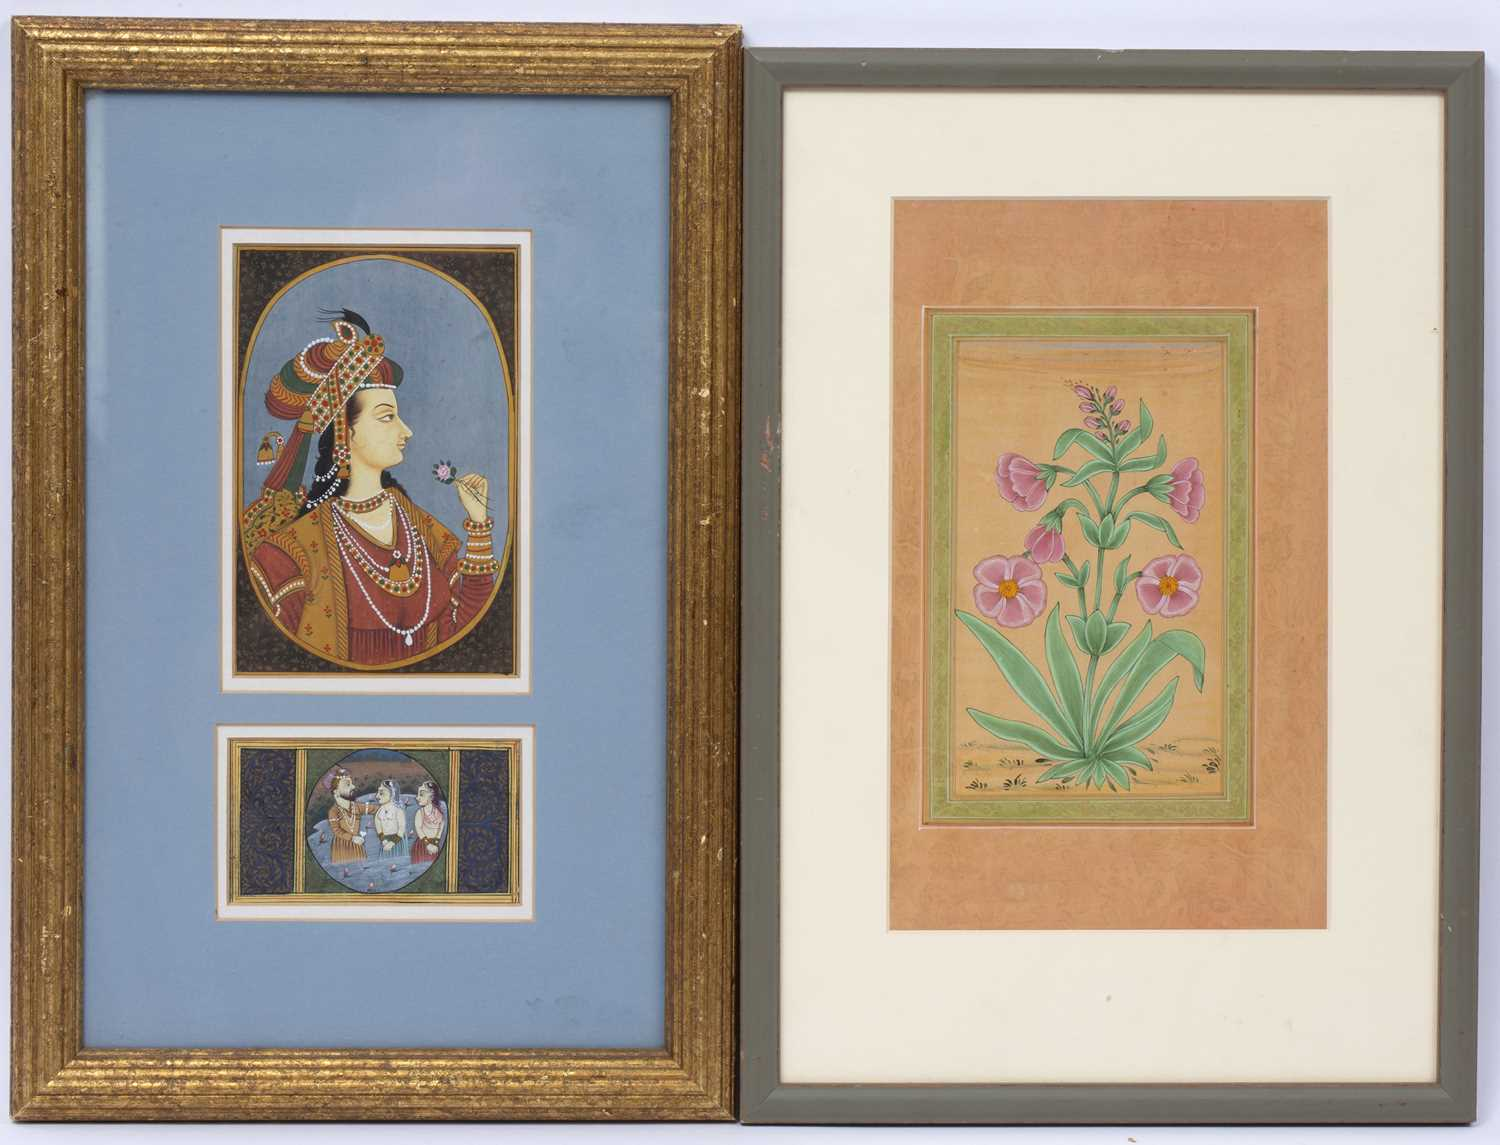 An Indian contemporary miniature portrait painting, 14.5 x 10cm, framed with a baptismal scene, 5 - Image 2 of 3